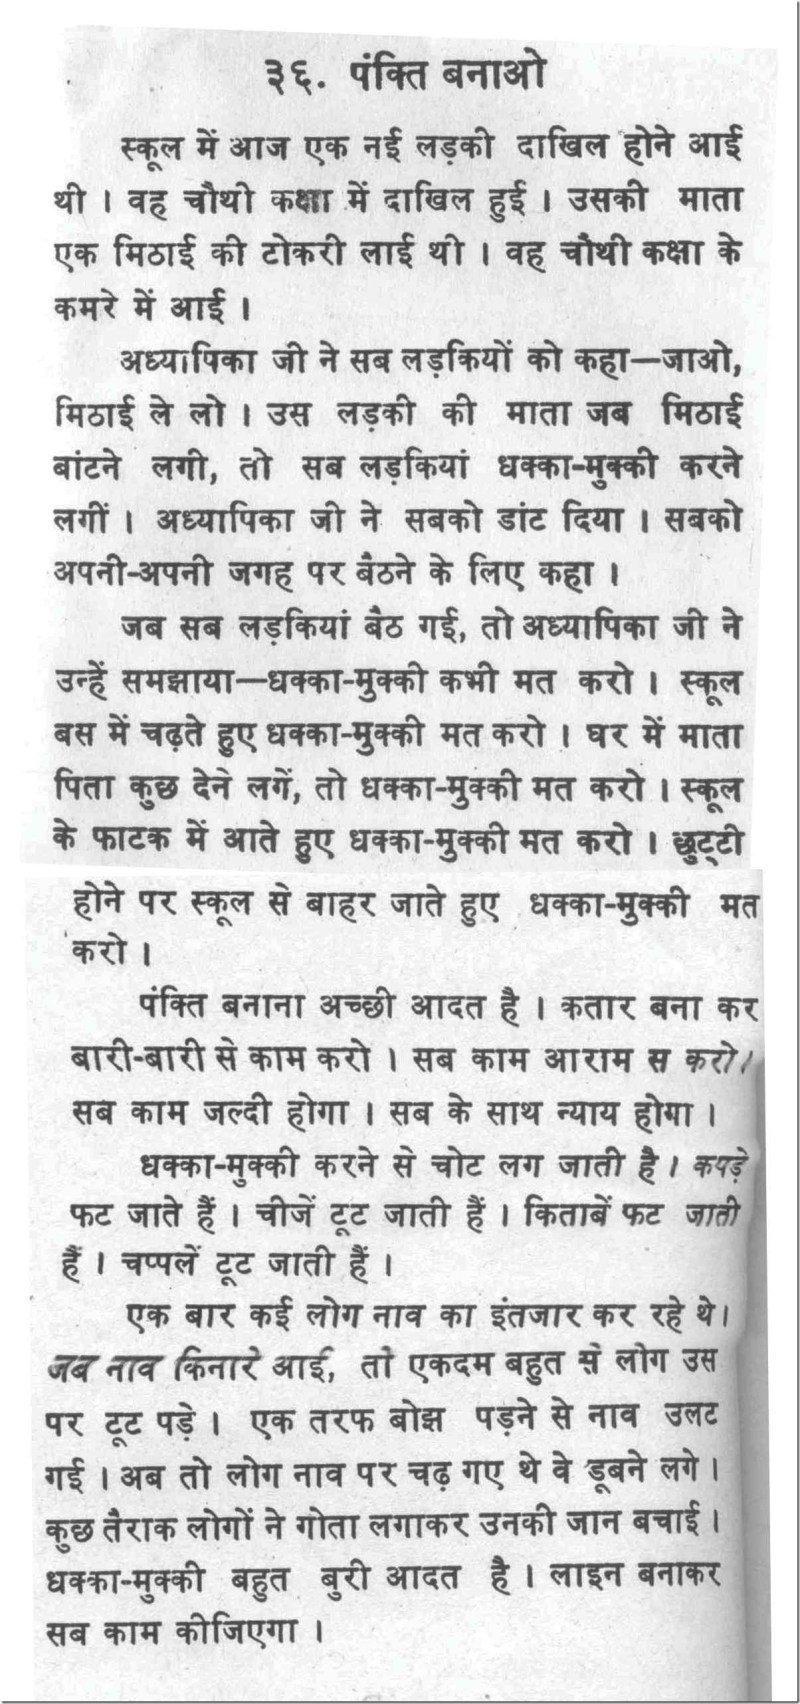 003 10030 Thumbresize8002c1704 Good Habits Essay In Hindi Exceptional Reading Habit Wikipedia Full